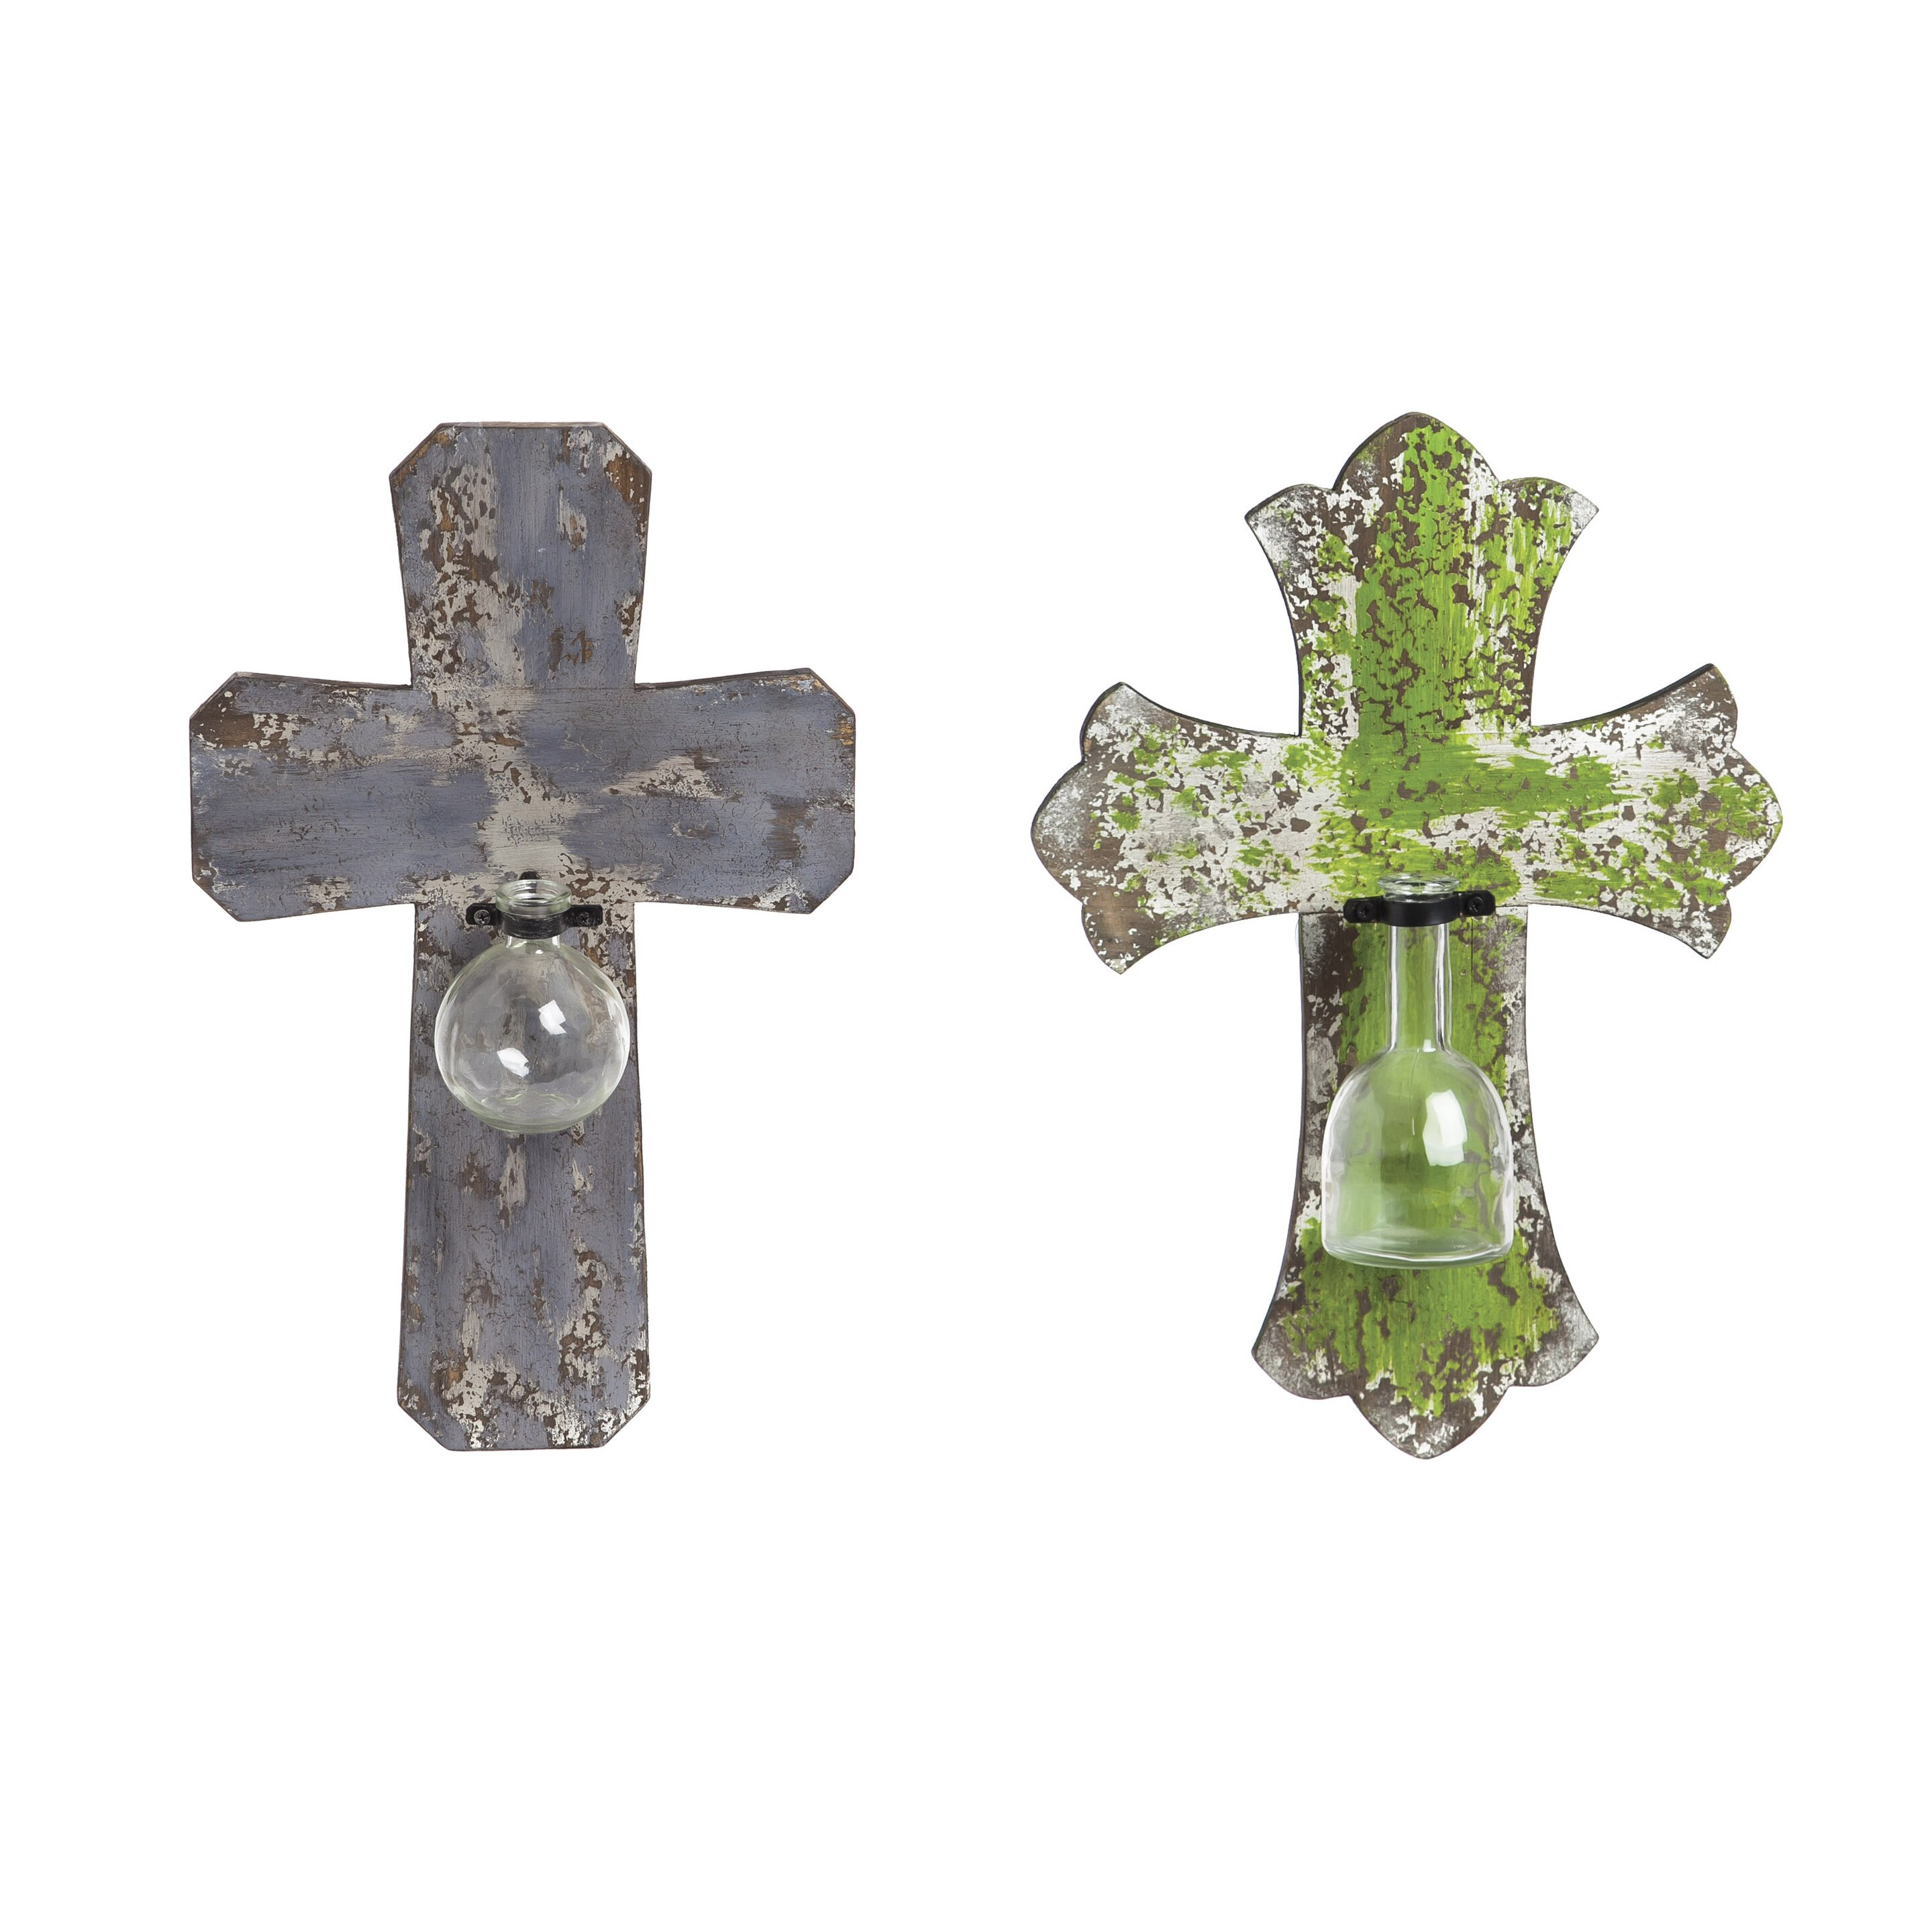 Piece Wooden Wall Crosses With Decorative Glass Vases Wall Decor Set